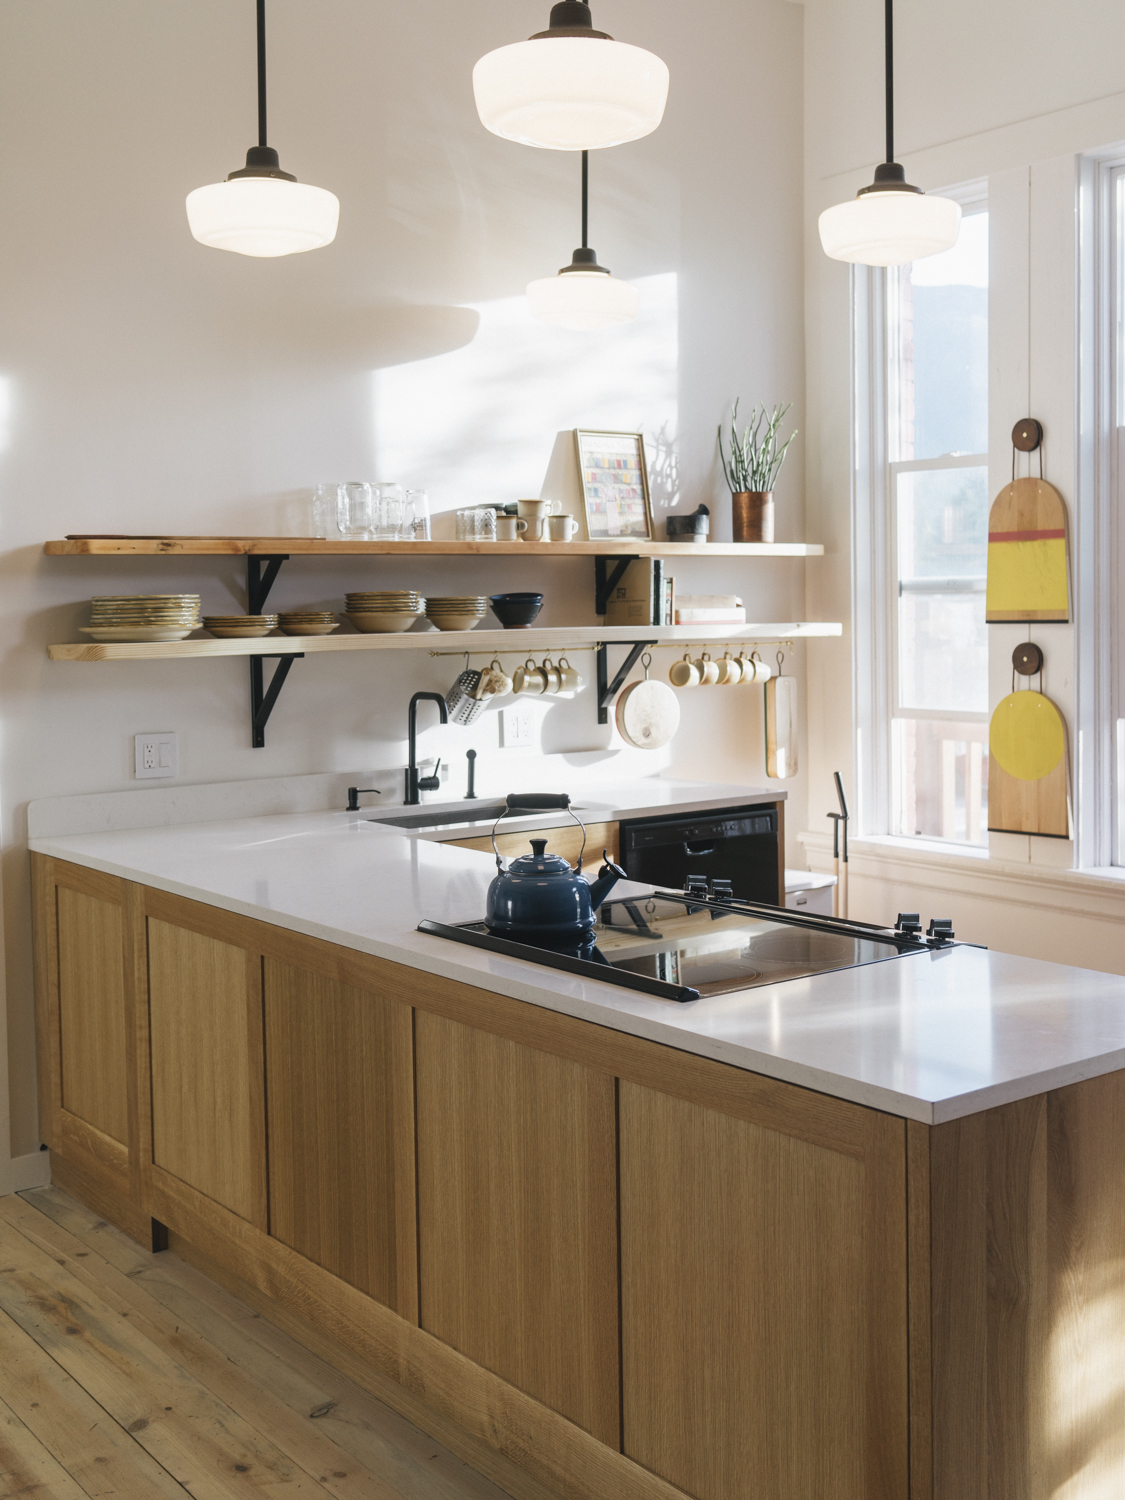 Custom Oak cabinets by  Phloem Studio  accented by beautiful  M.Crow  cutting boards in our communal kitchen